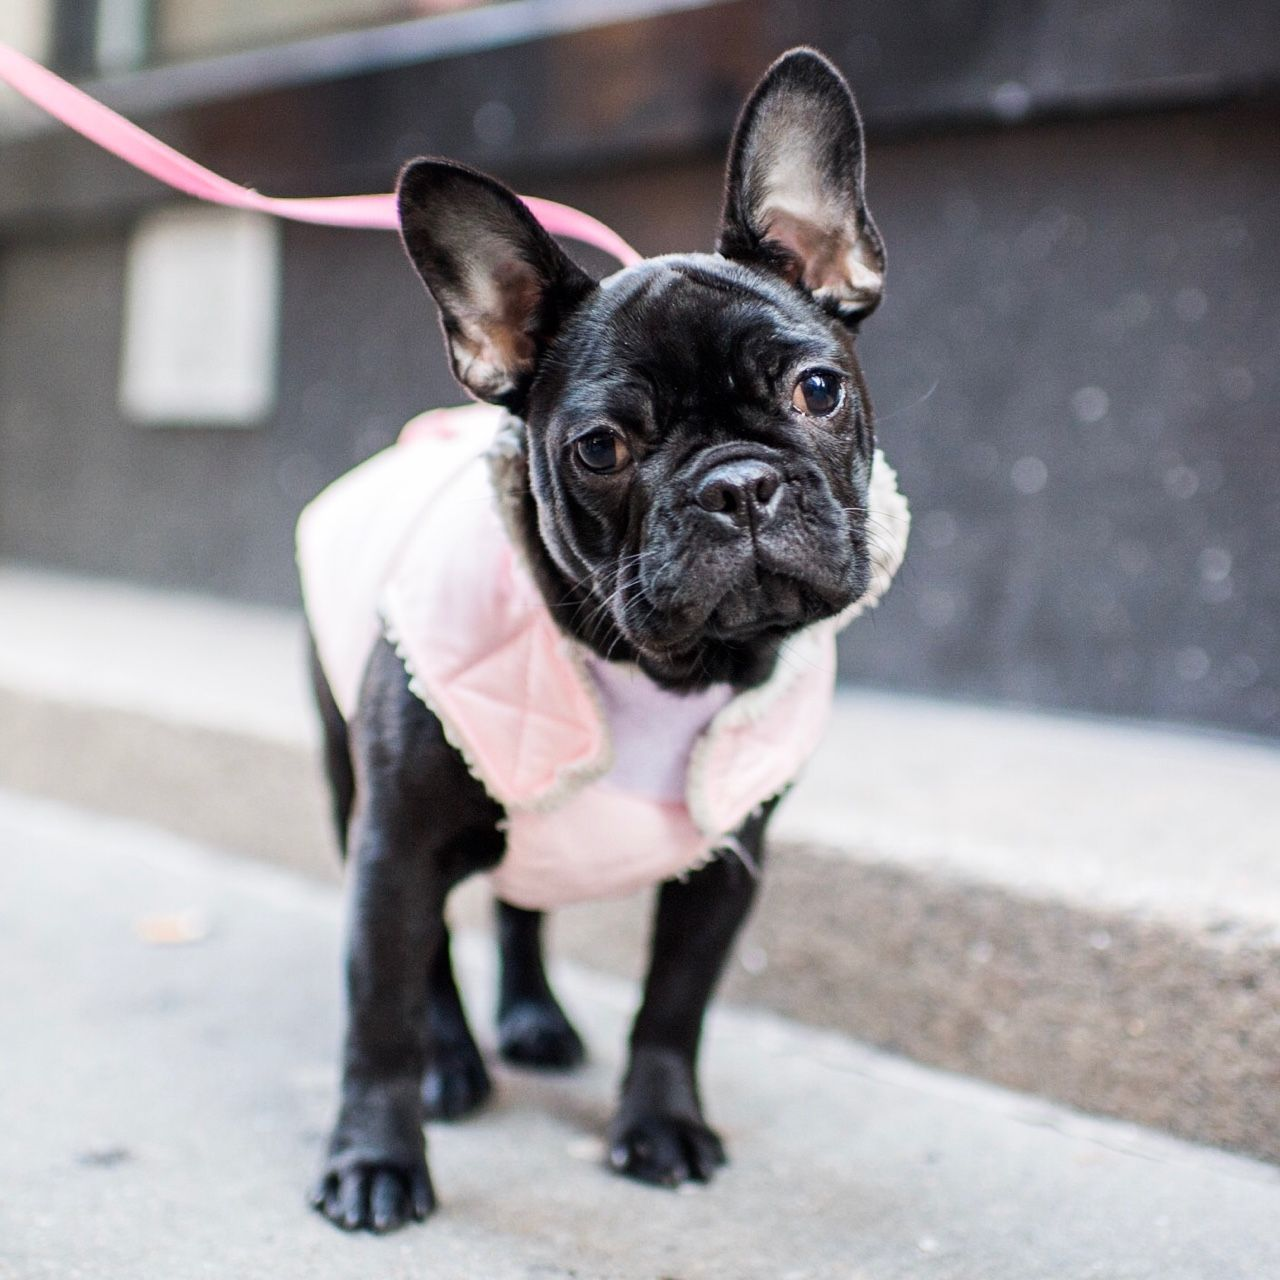 Bernice, French Bulldog (6 m/o), Crosby & Spring St., New